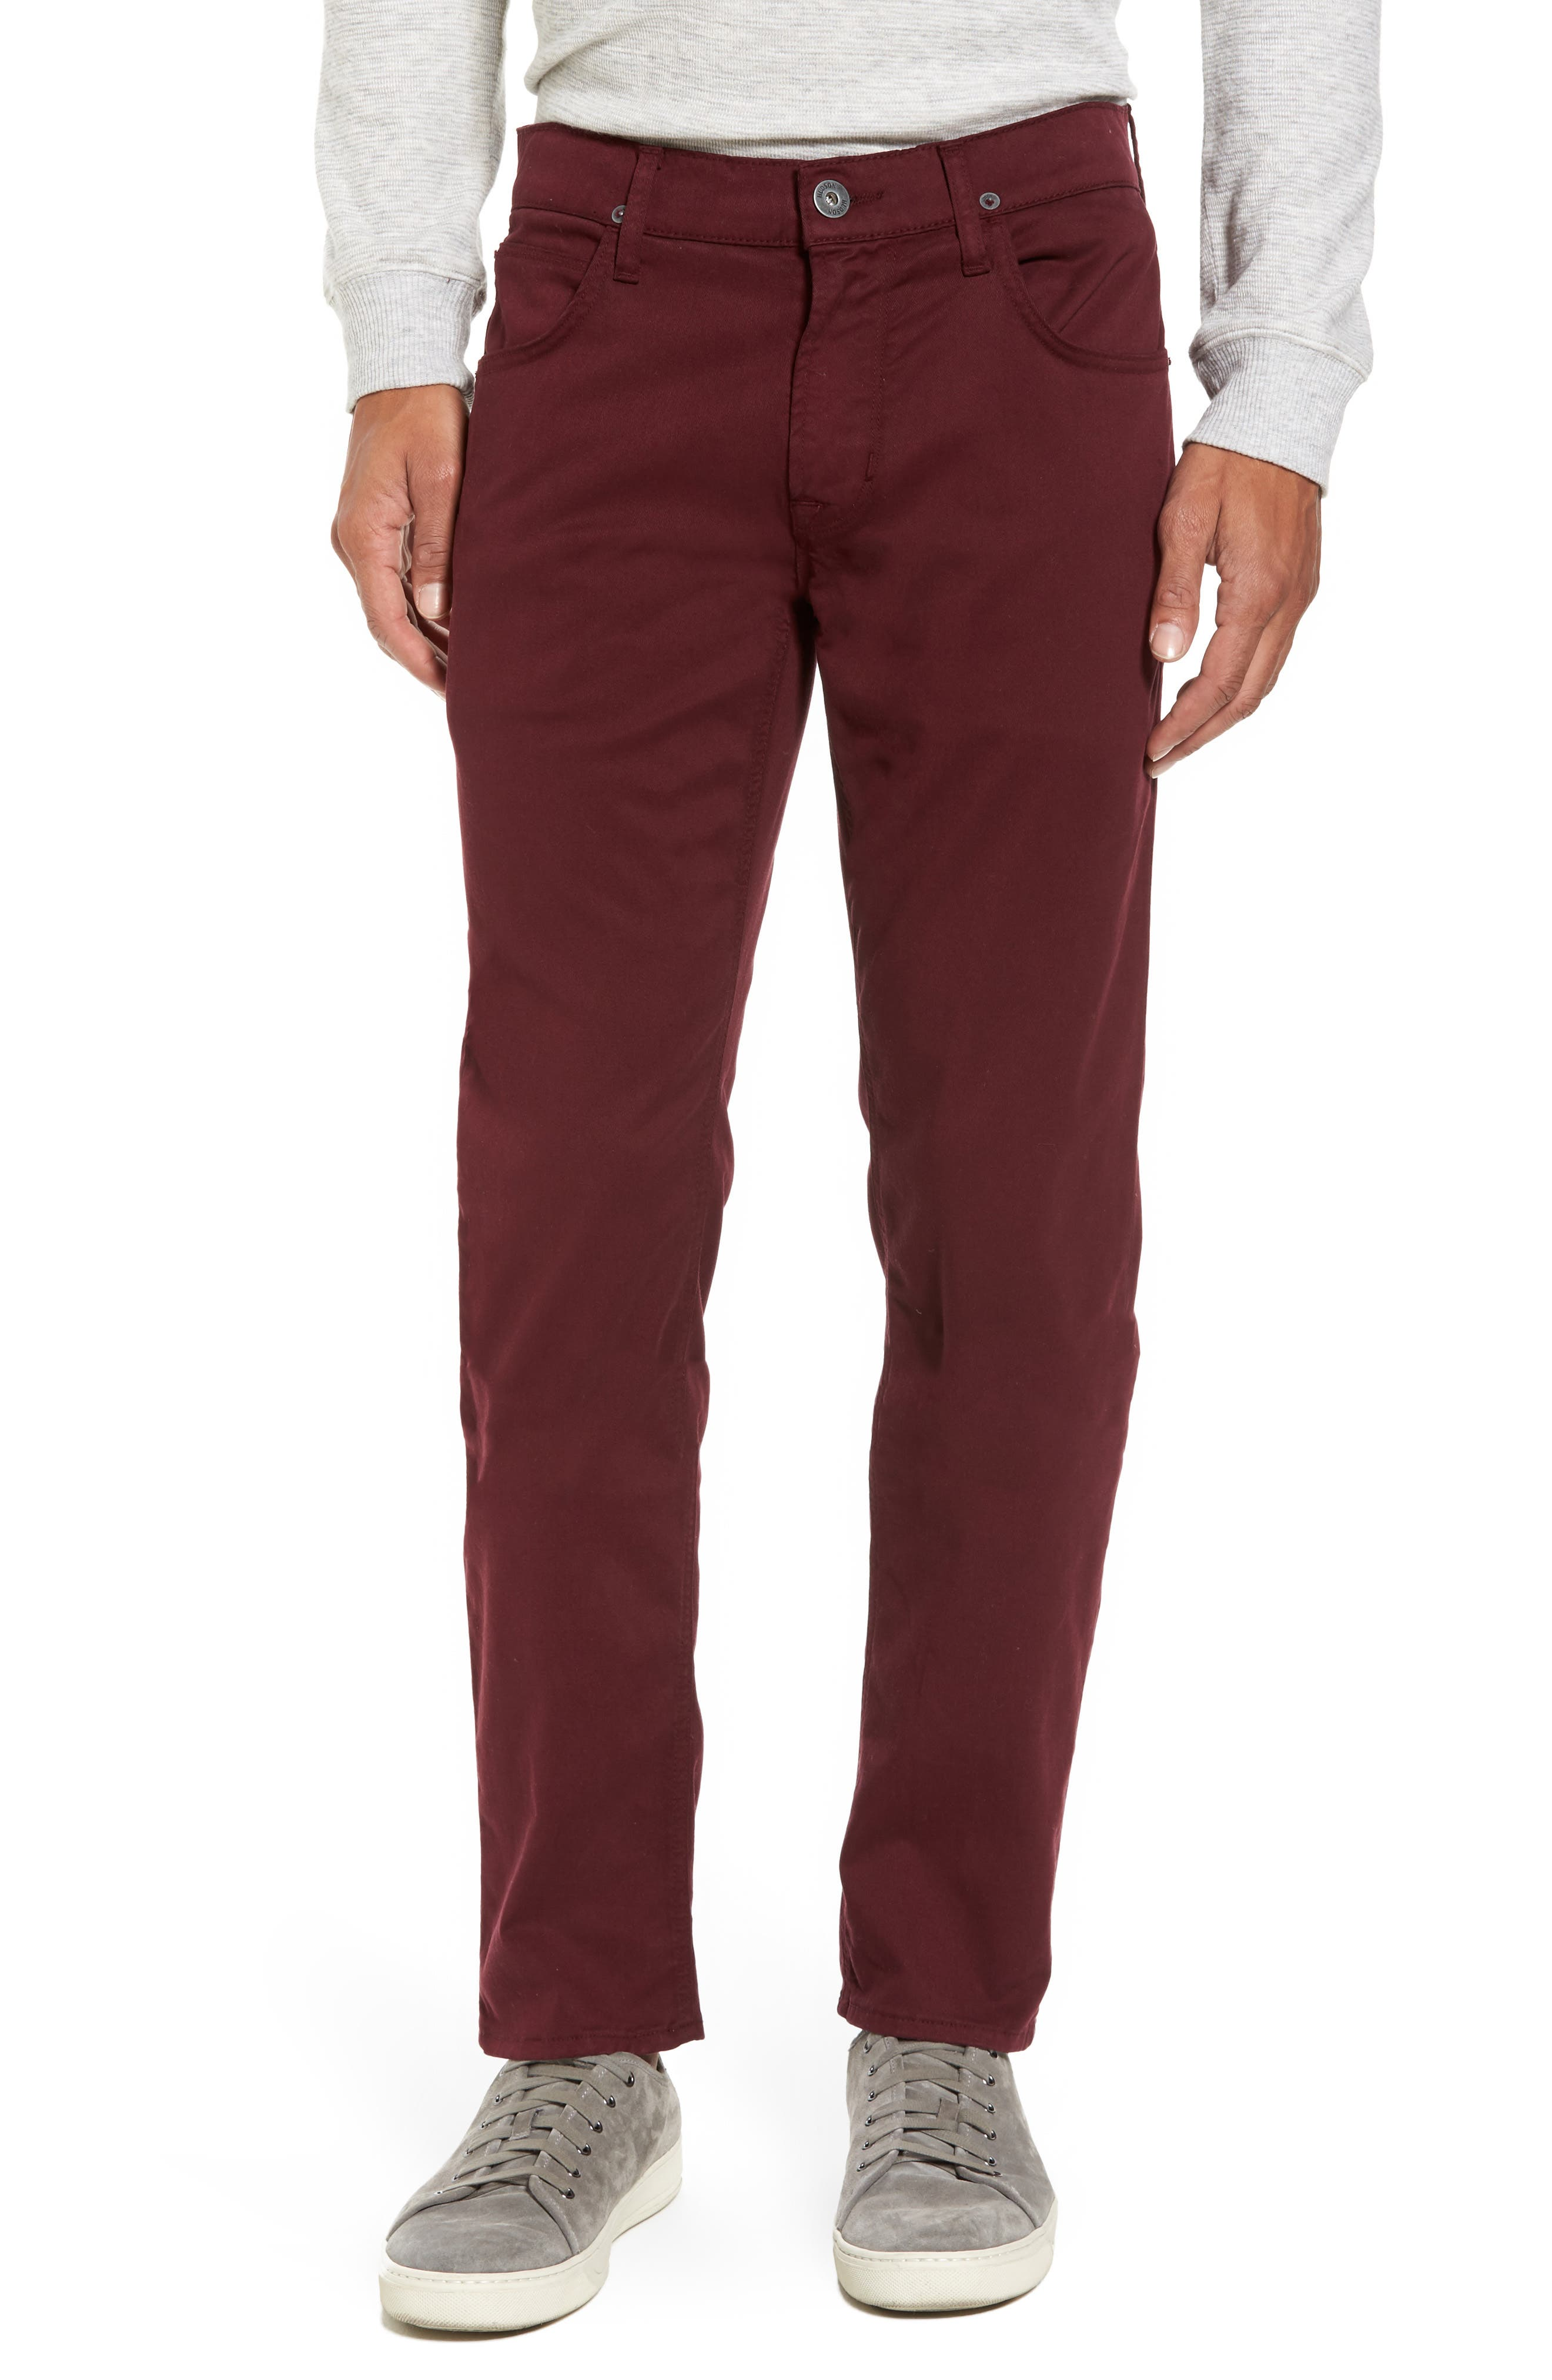 Blake Slim Fit Jeans,                         Main,                         color, BURGUNDY